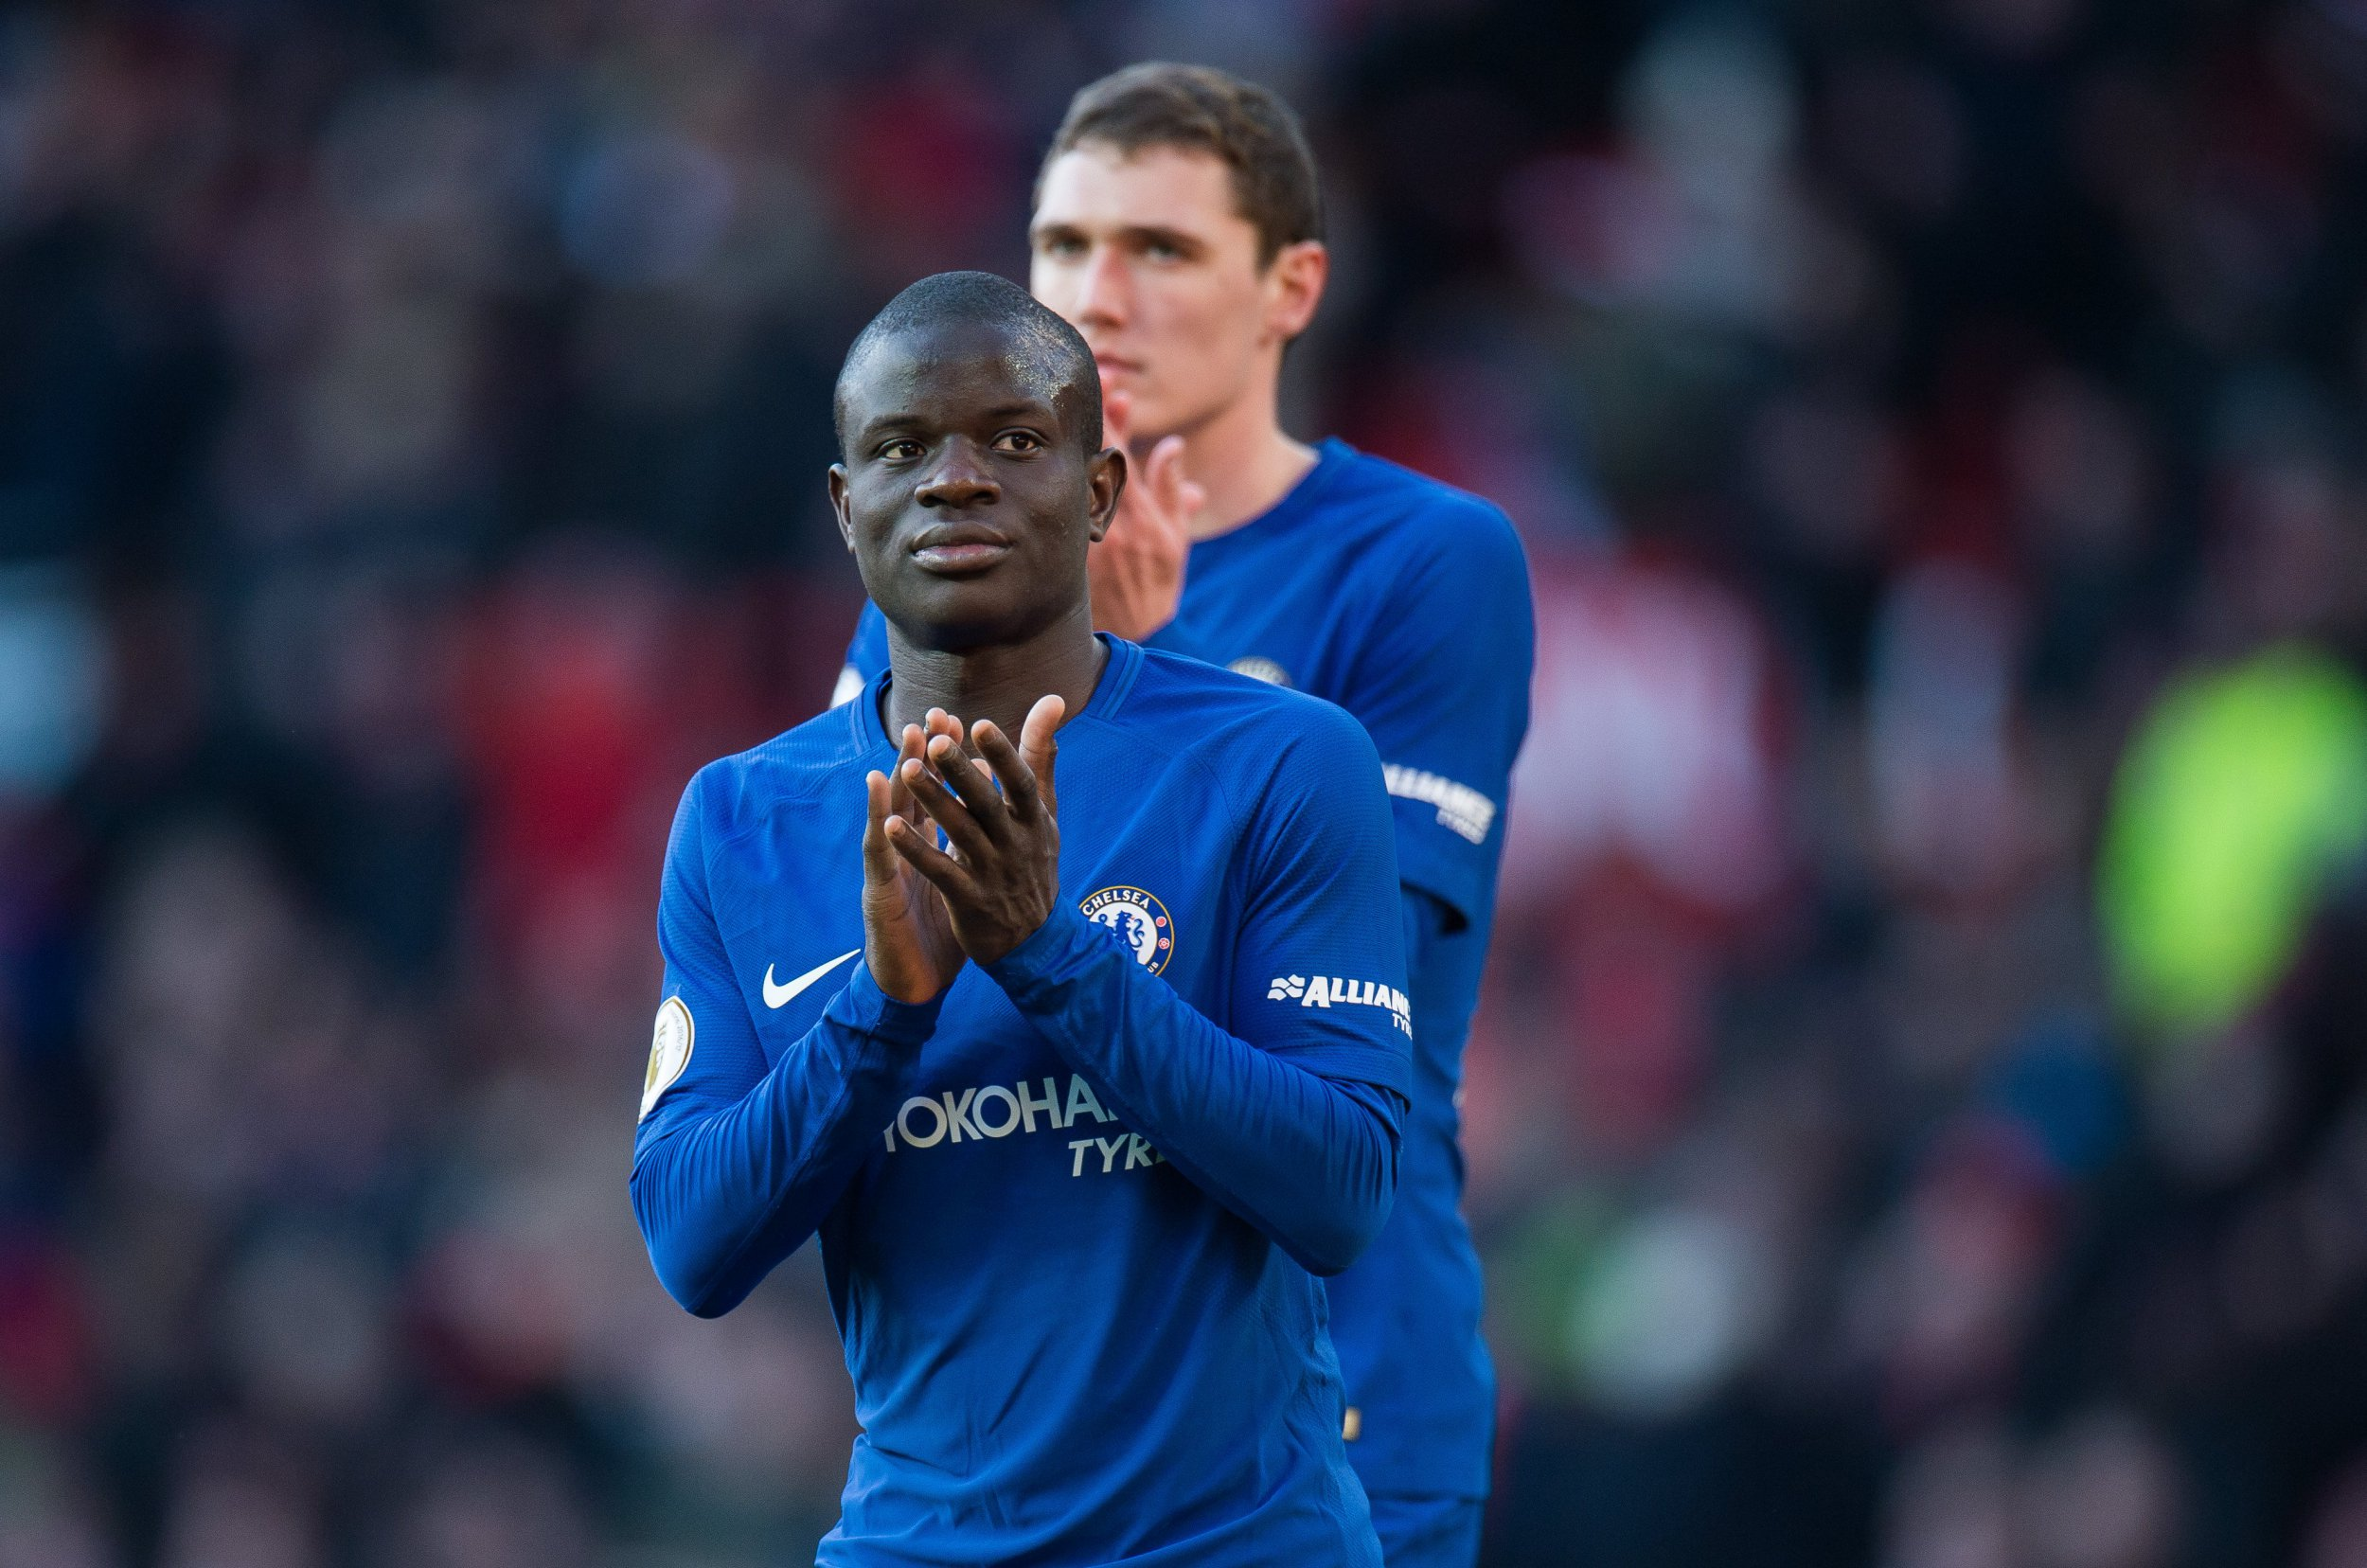 epa06564750 Chelsea???s N'Golo Kante reacts after the English Premier League soccer match between Manchester United and Chelsea FC held at Old Trafford, Manchester, Britain, 25 February 2018. EPA/PETER POWELL EDITORIAL USE ONLY. No use with unauthorized audio, video, data, fixture lists, club/league logos or 'live' services. Online in-match use limited to 75 images, no video emulation. No use in betting, games or single club/league/player publications.